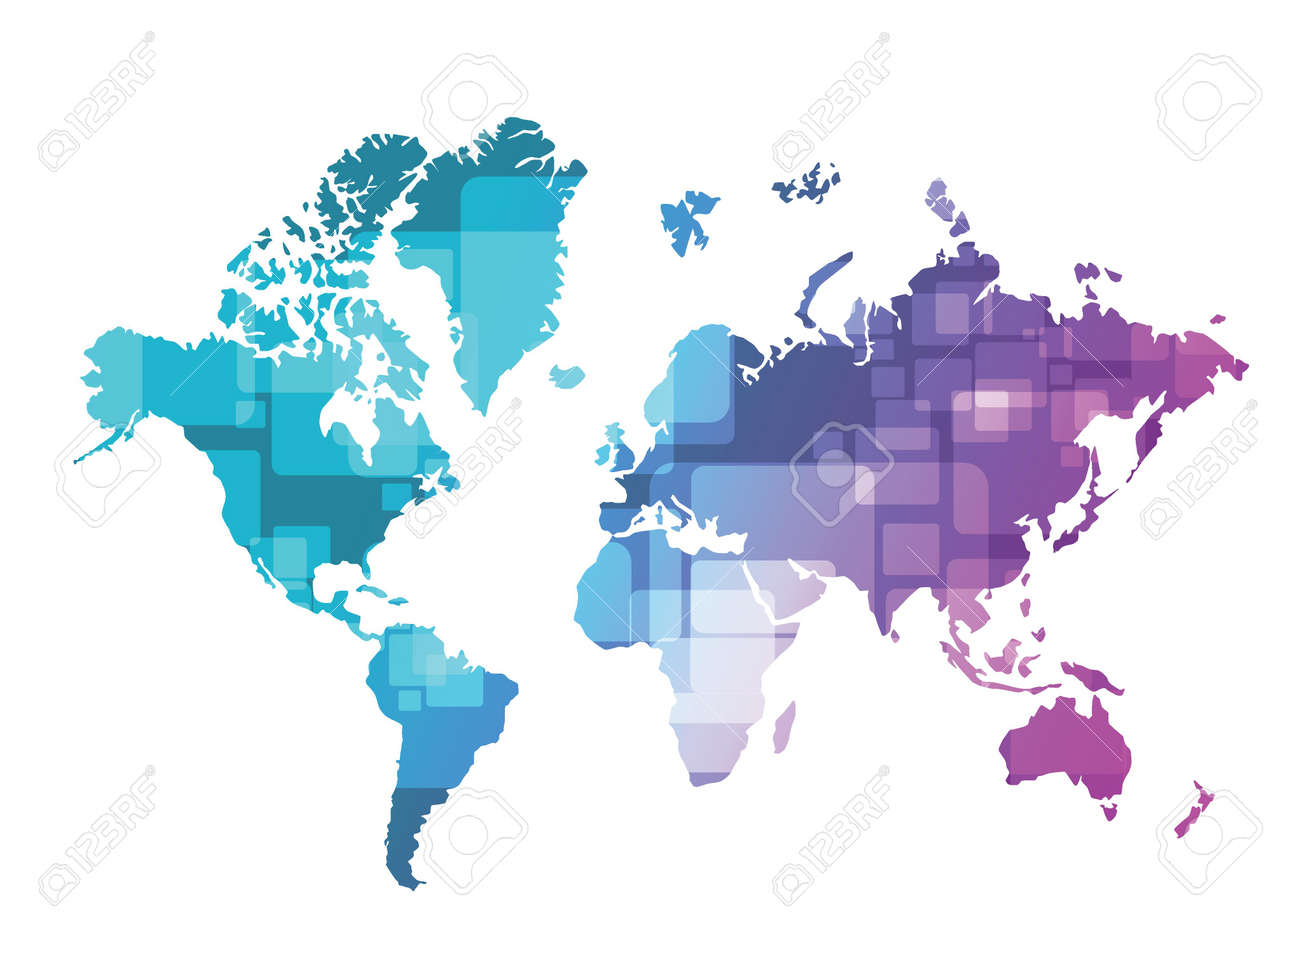 World map technology illustration design over a green and purple world map technology illustration design over a green and purple background foto de archivo 28561962 gumiabroncs Image collections